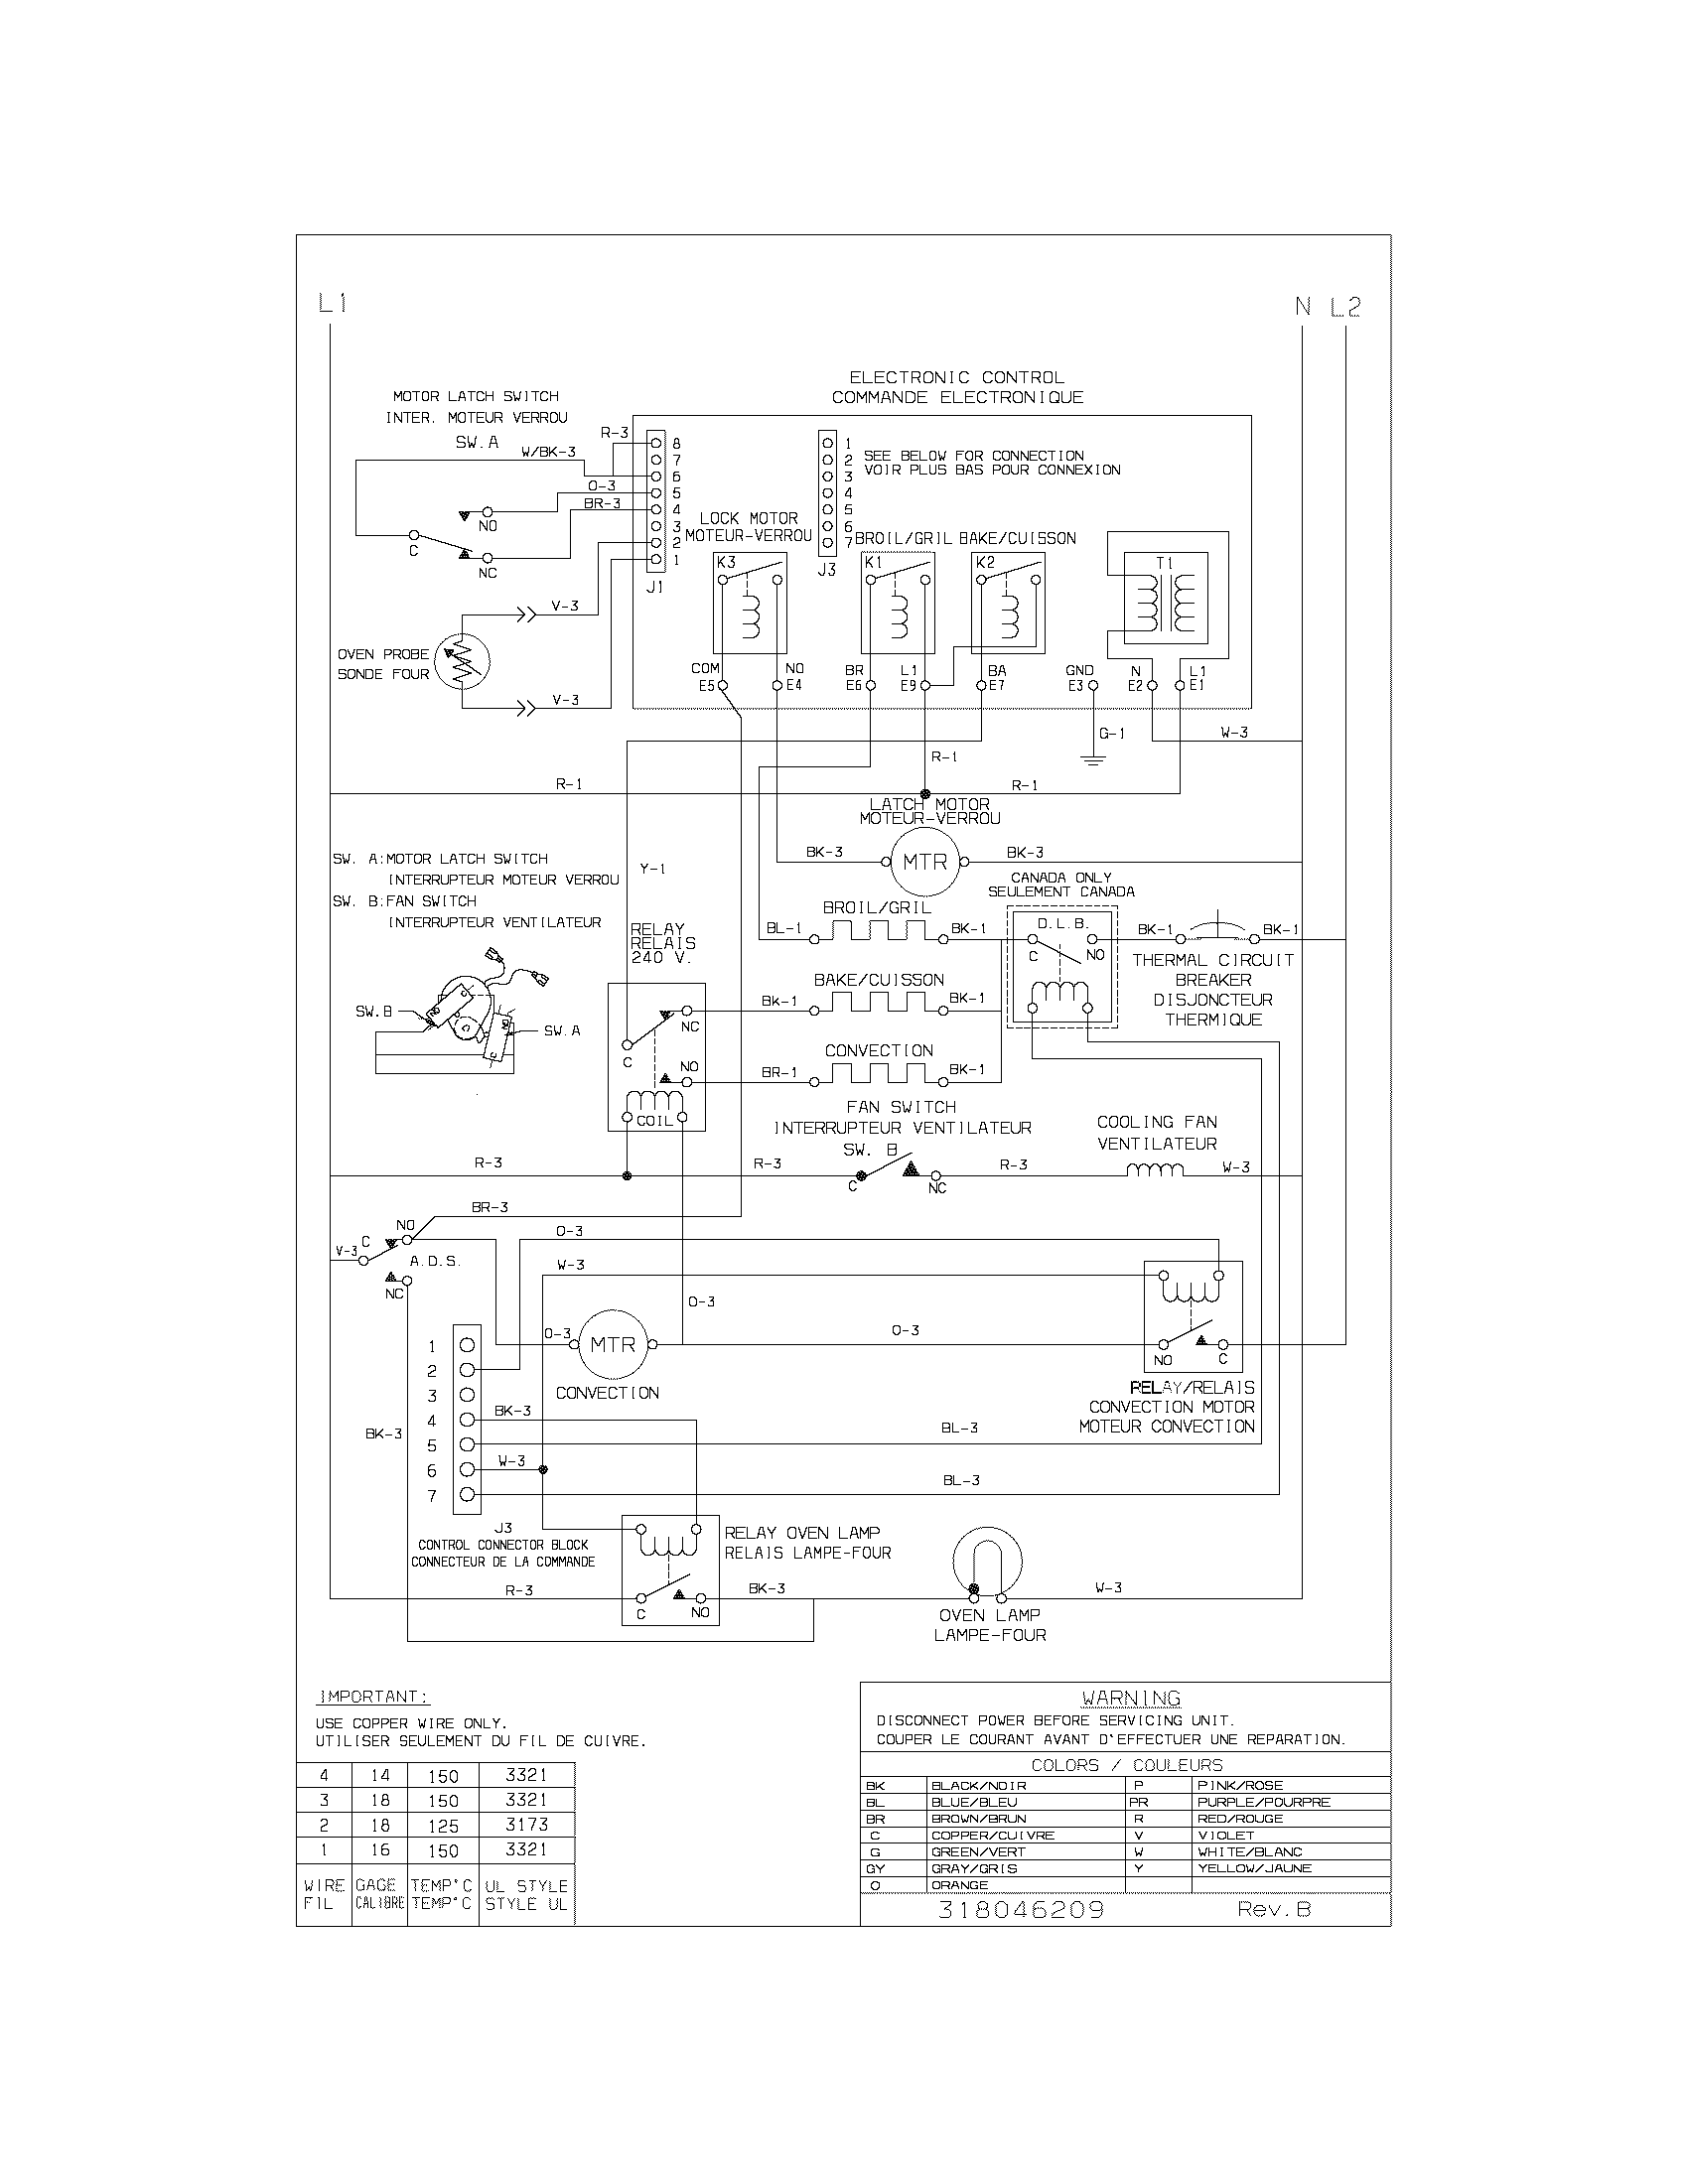 wiring diagram parts frigidaire cgeb27s7cs1 electric walloven timer stove clocks and frigidaire wiring diagram at honlapkeszites.co